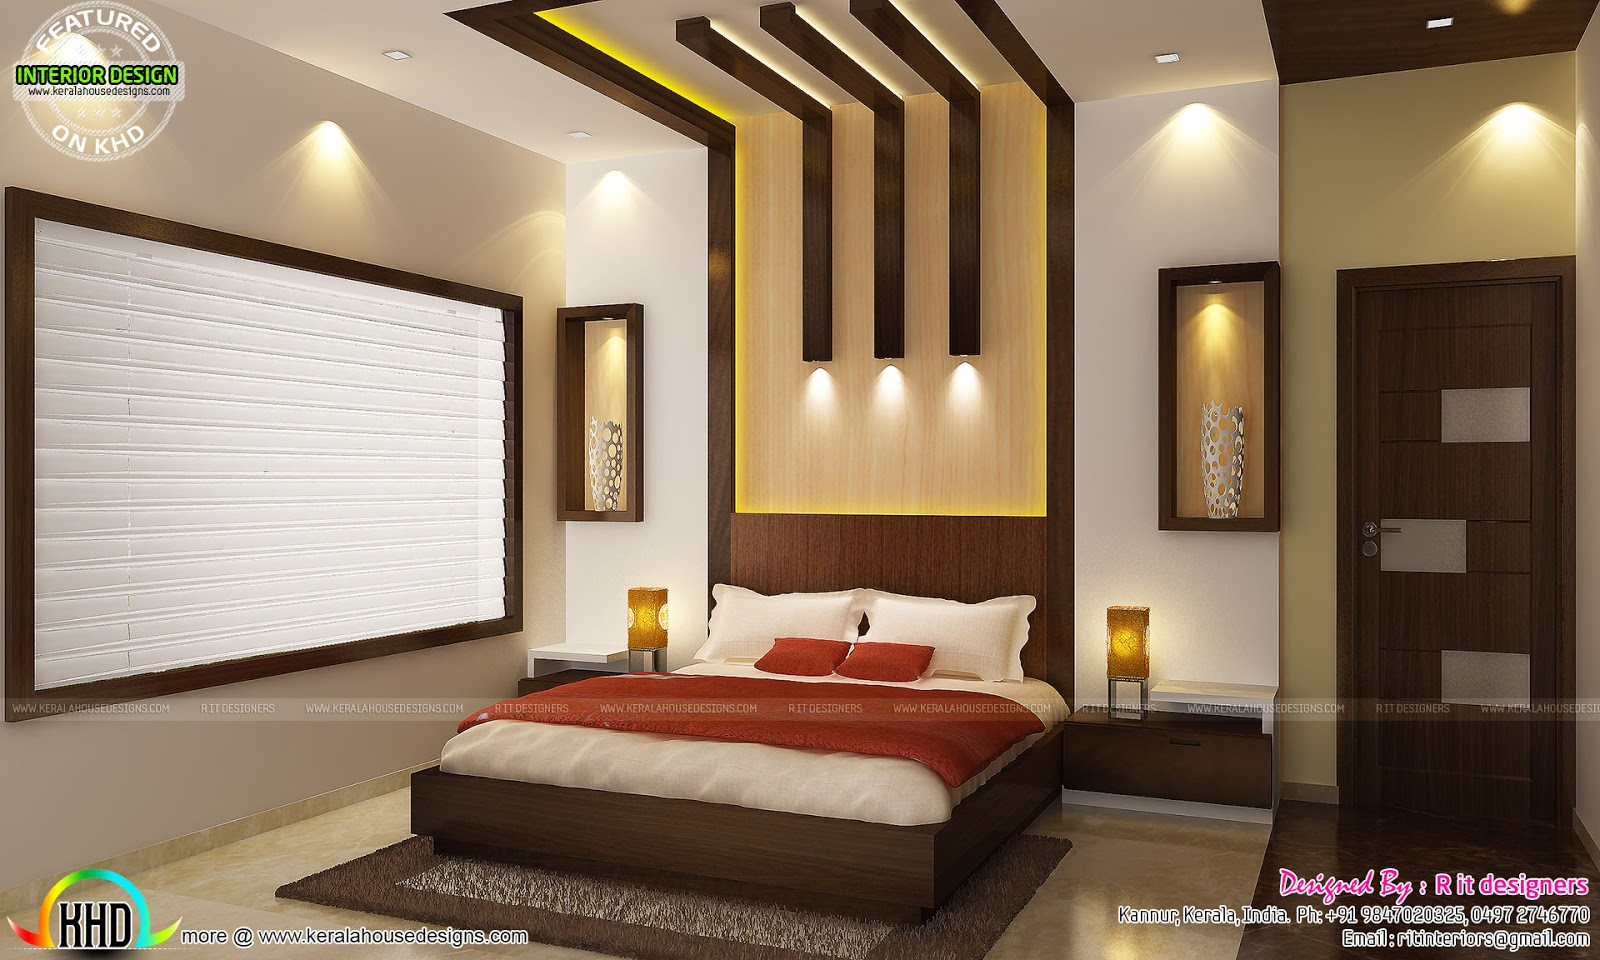 Kitchen living bedroom dining interior decor kerala for Interior design of kitchen room in india